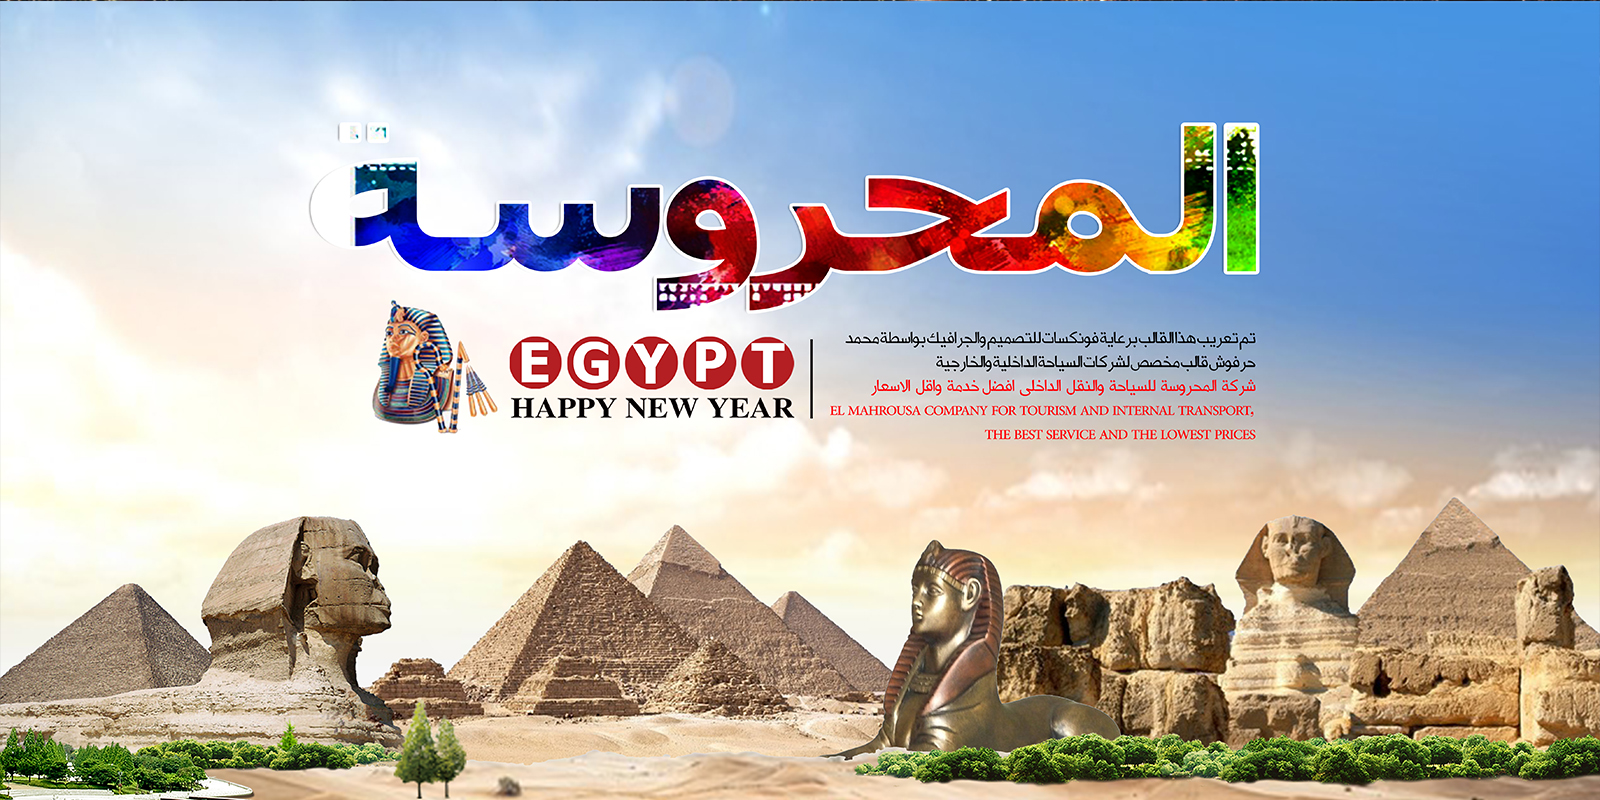 Special design, domestic tourism, with a large banner, suitable for a print or web banner, with modification of sizes